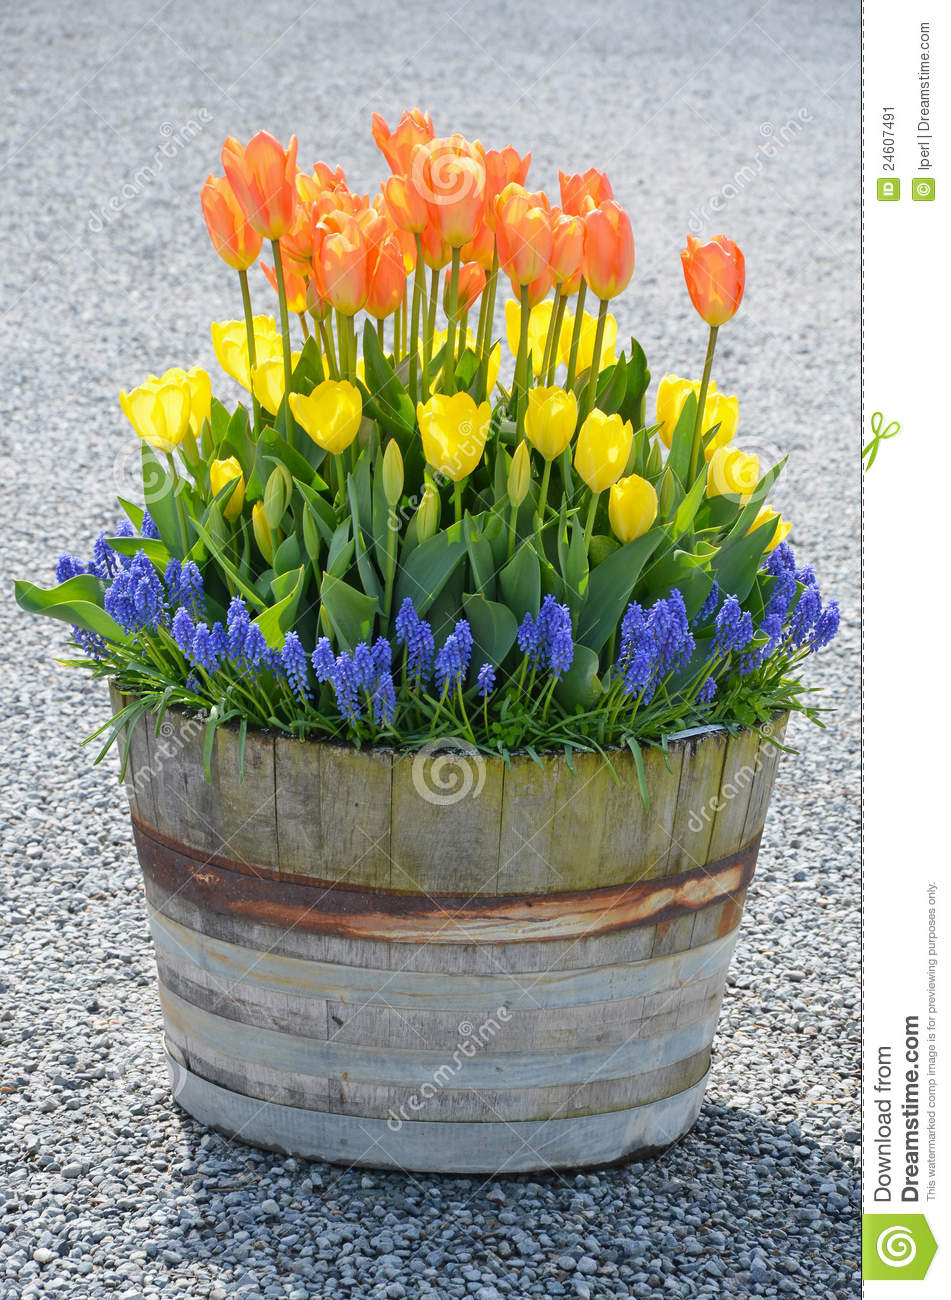 Tulip barrel planter stock image. Image of tulips, spring - 24607491